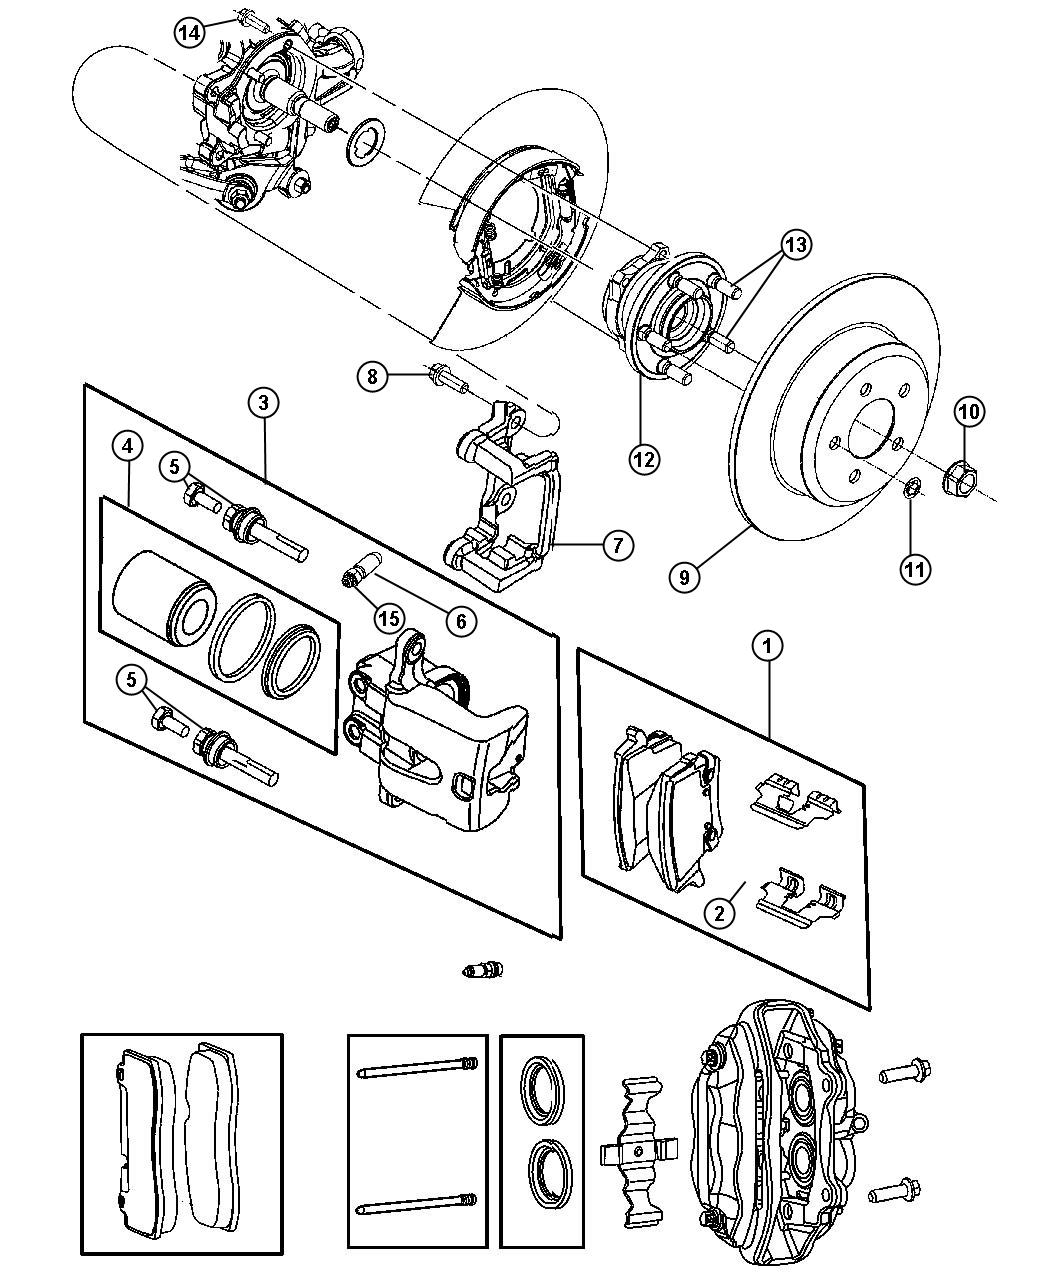 ZM 1213815945 DB1335PM FRONT DISC PAD SET FORD COURIER 1 3 1 8 VAN 91 96 also How To Change Front Wheel Bearing 1998 Kia Sephia as well Kia Spectra Horn Location likewise T24085398 Wiring diagram kia 2007 radio additionally NZ2d 7530. on 2001 kia sephia blue